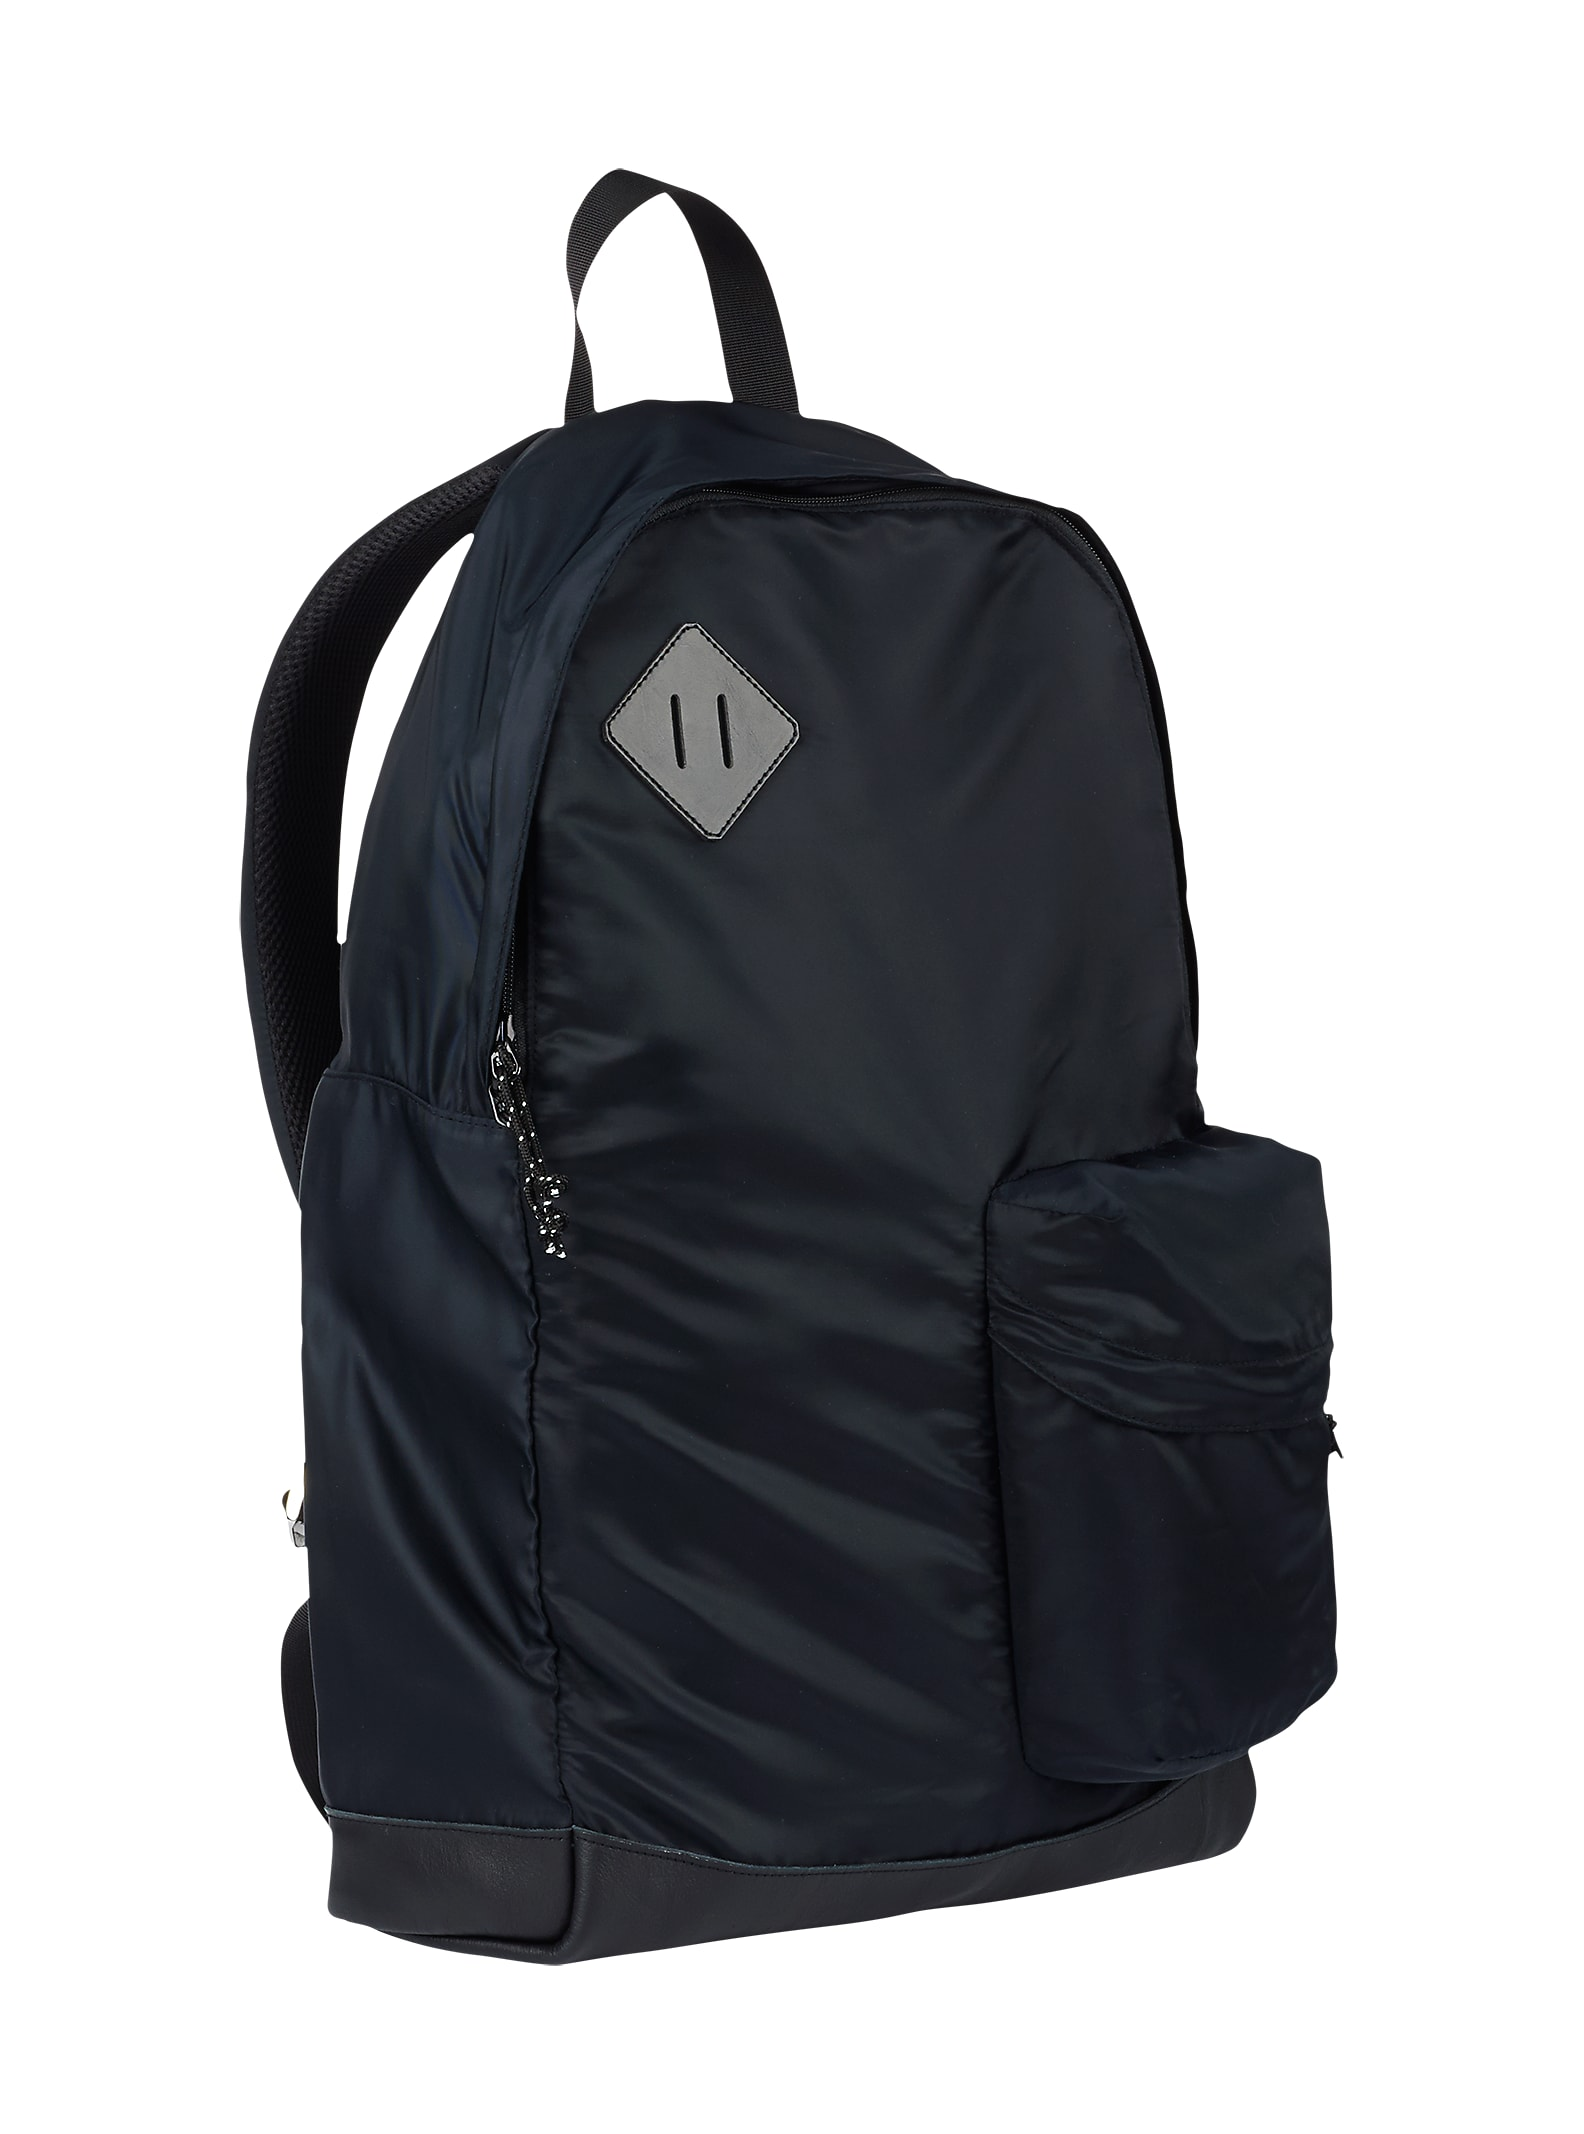 Black Scale x Burton Backpack shown in Black Scale Black